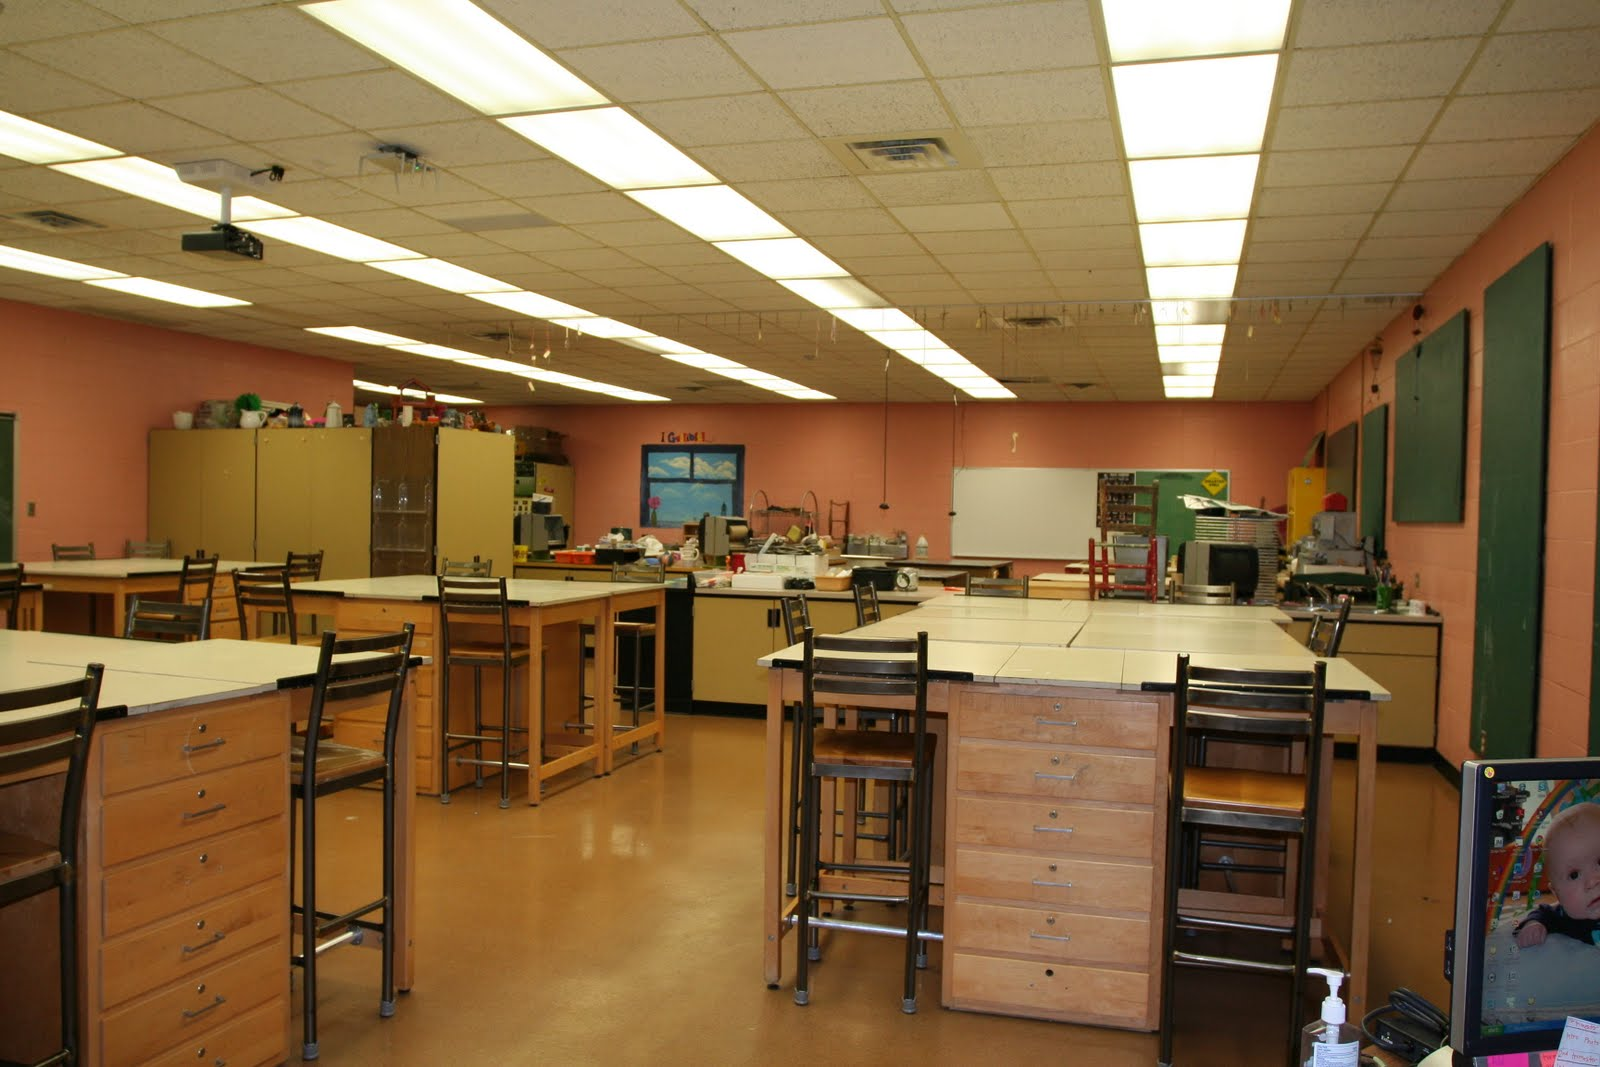 Art Room Decoration School Of Life In A High School Art Room Clean Slate